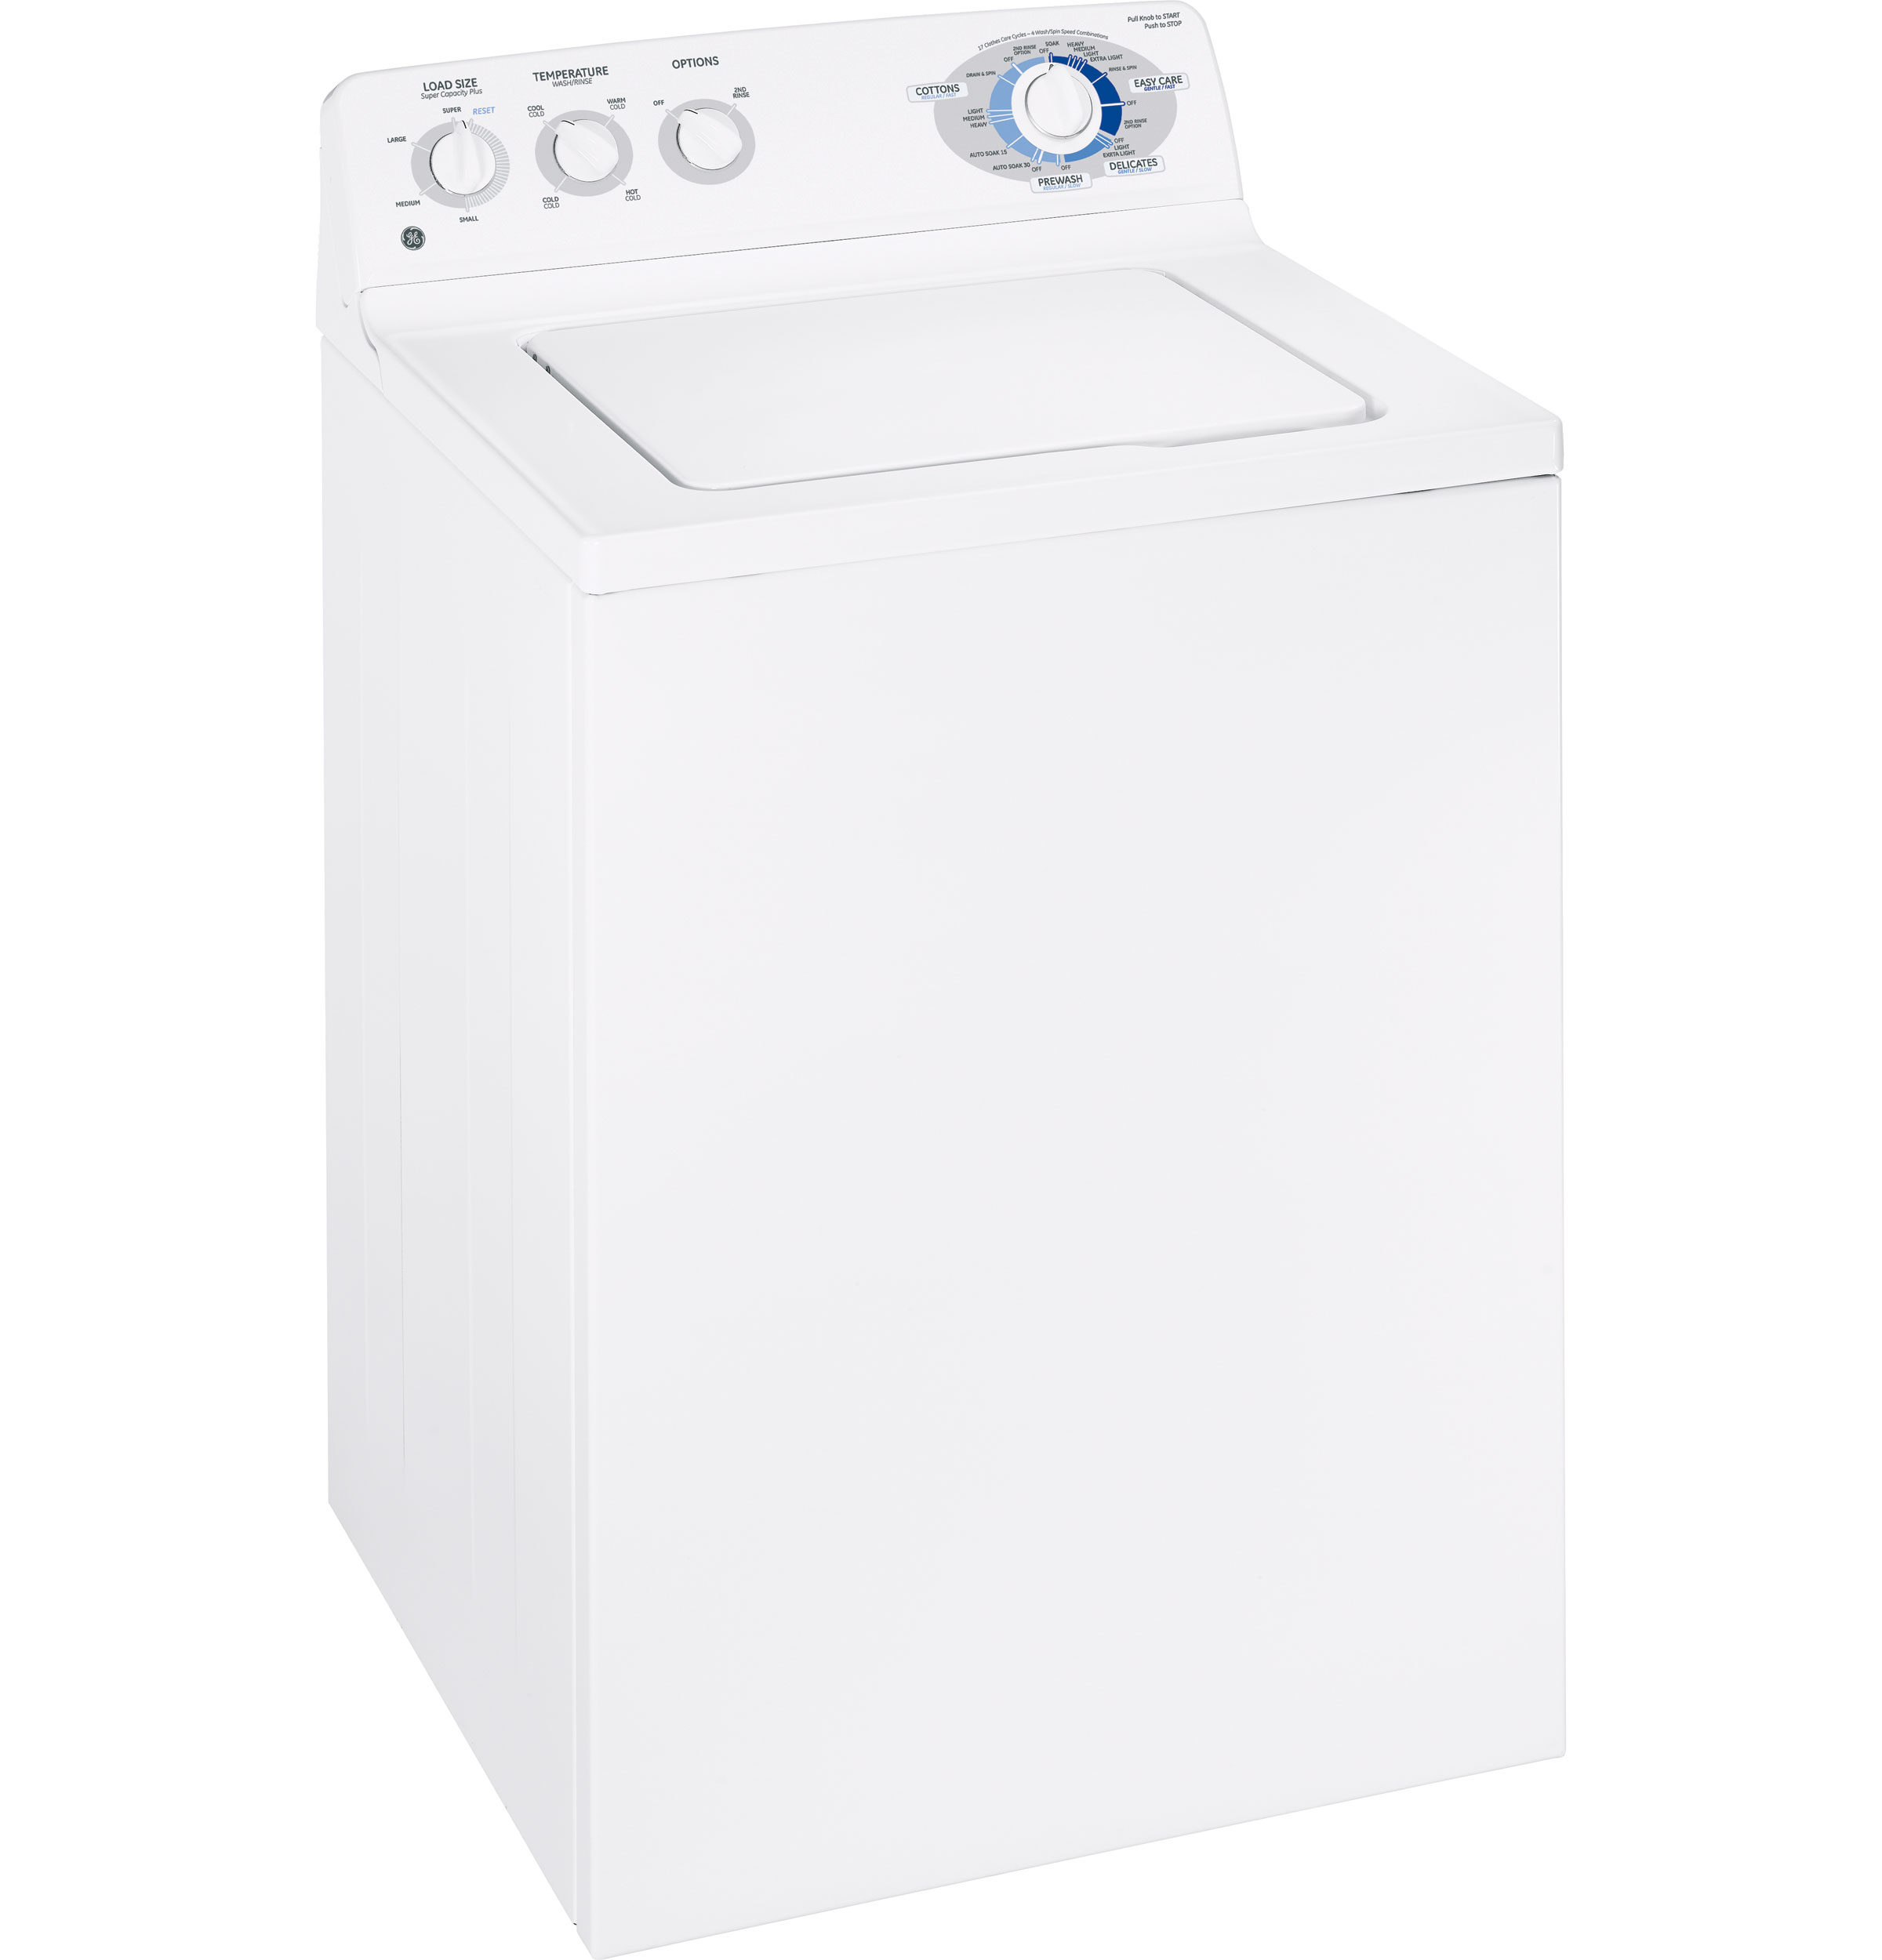 ge® 3 2 cu ft super capacity washer wcsr4170gww ge appliances product image